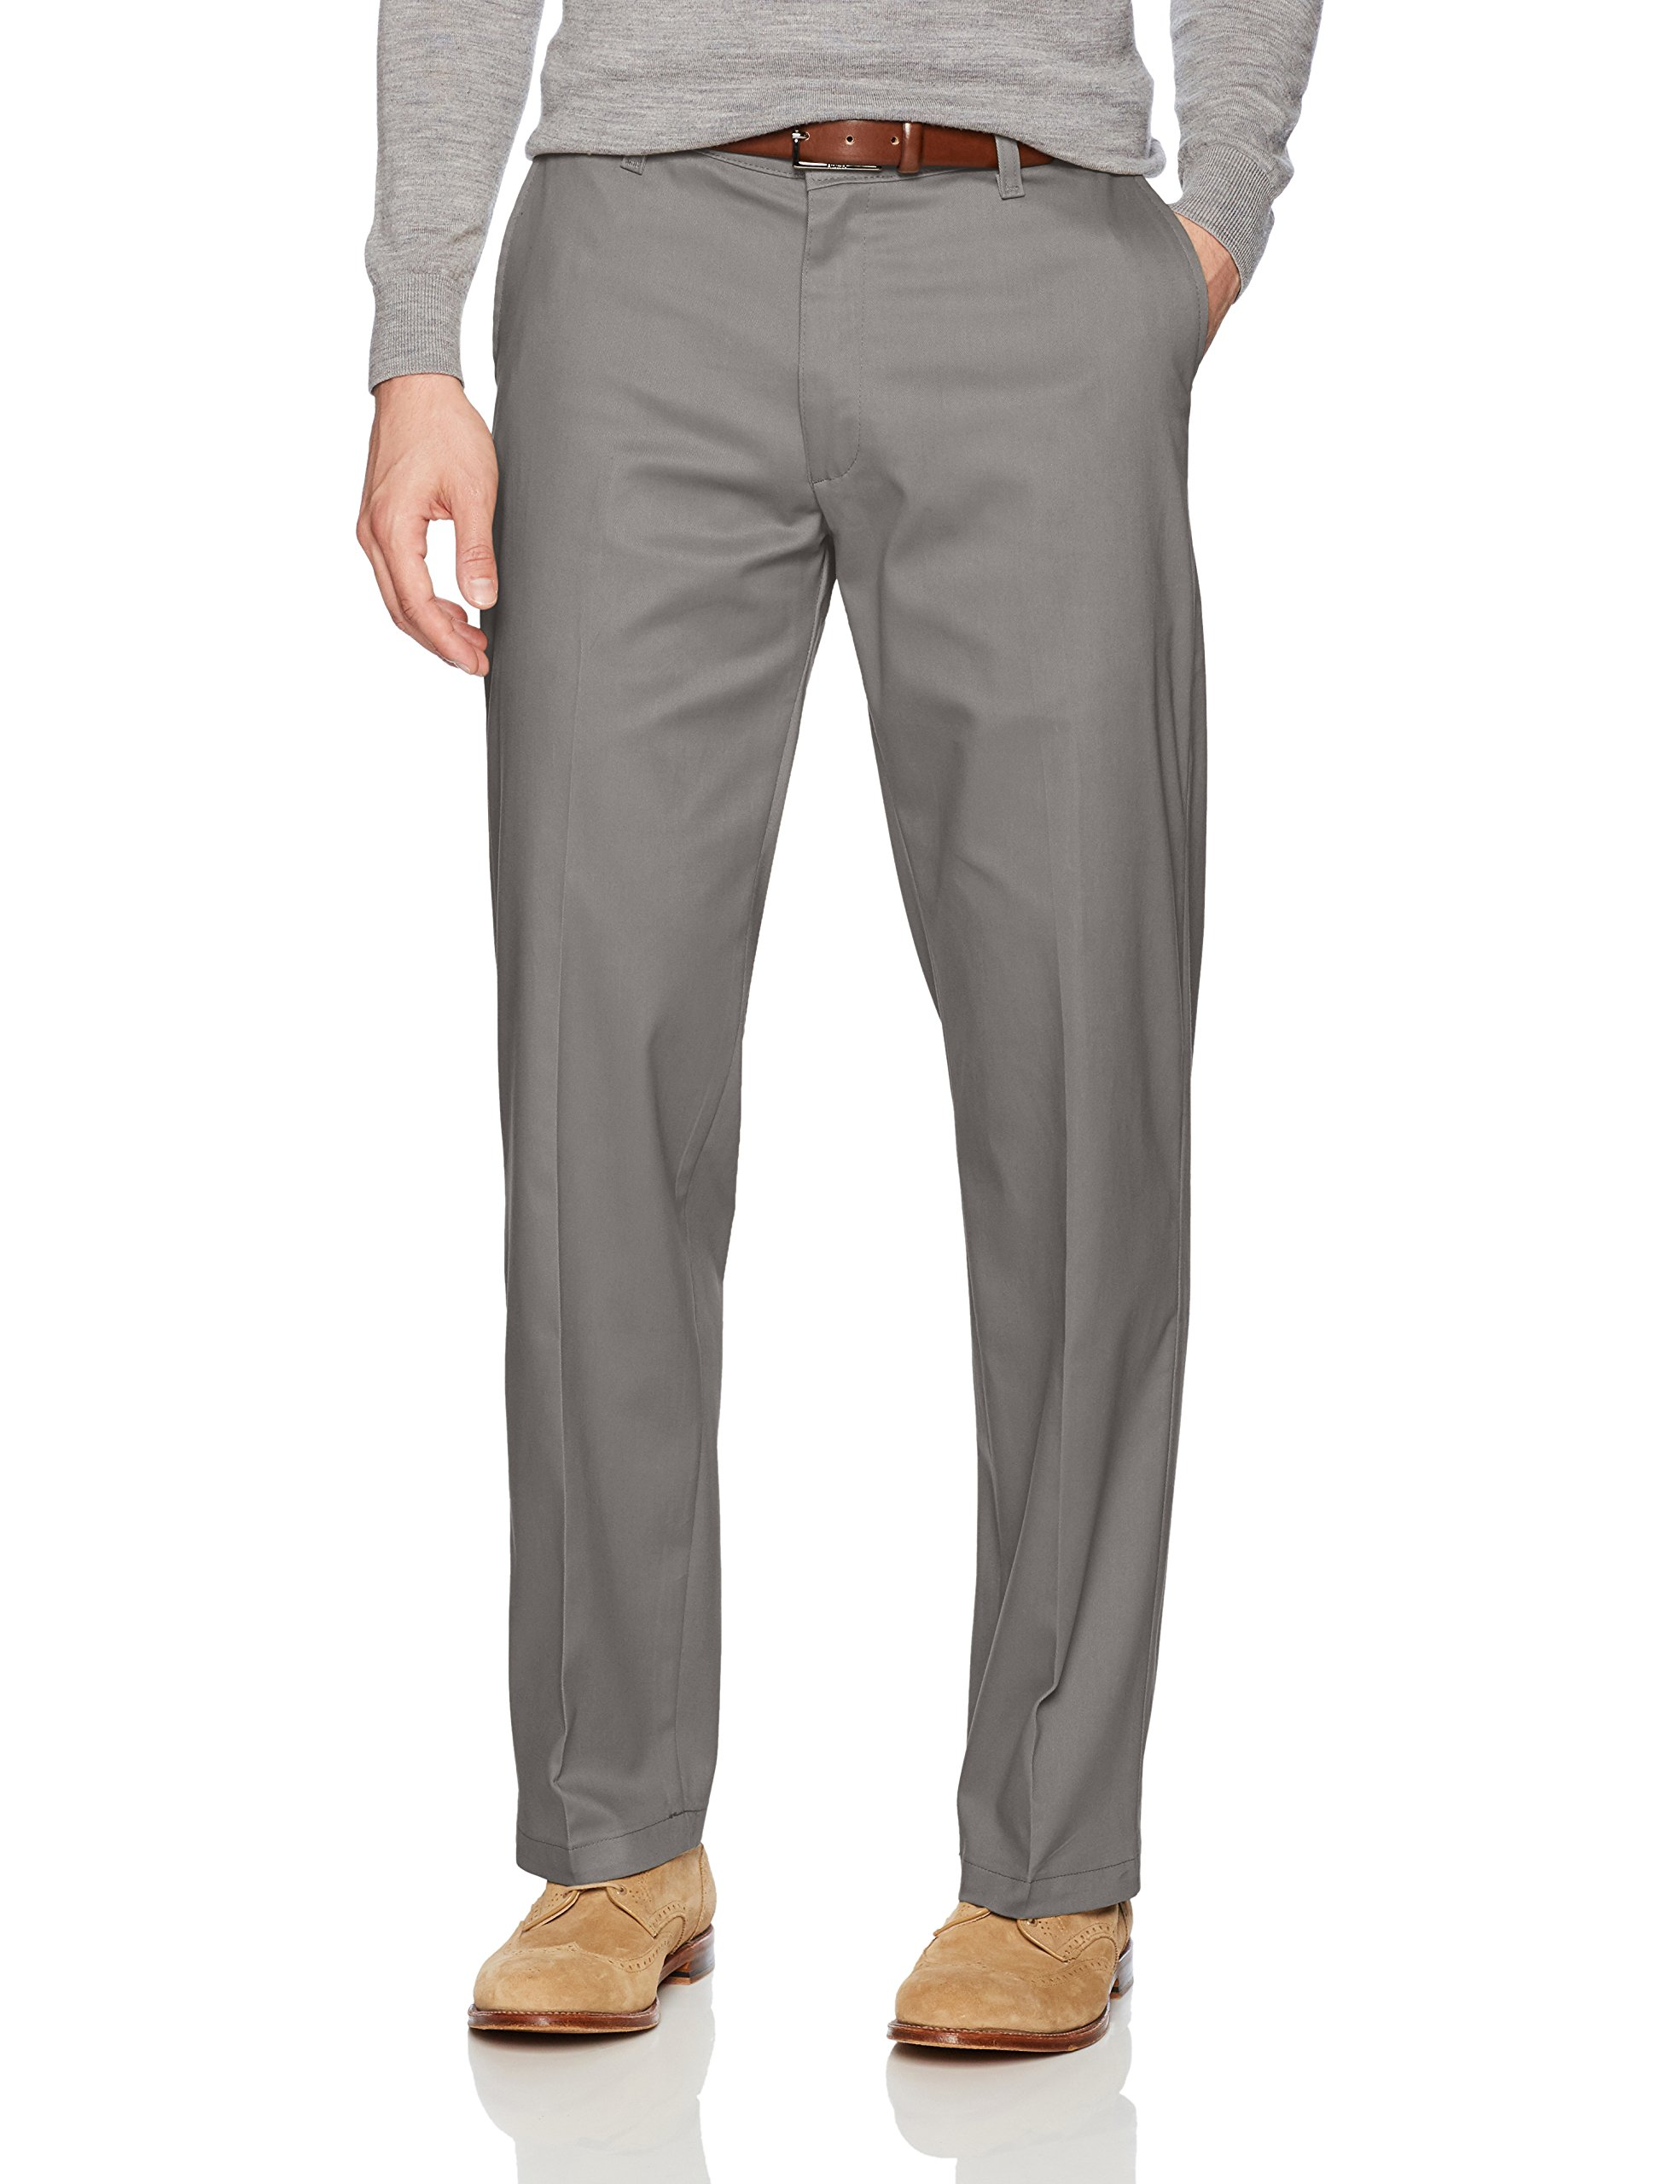 LEE Men's Total Freedom Stretch Relaxed Fit Flat Front Pant, Gray, 40W x 32L